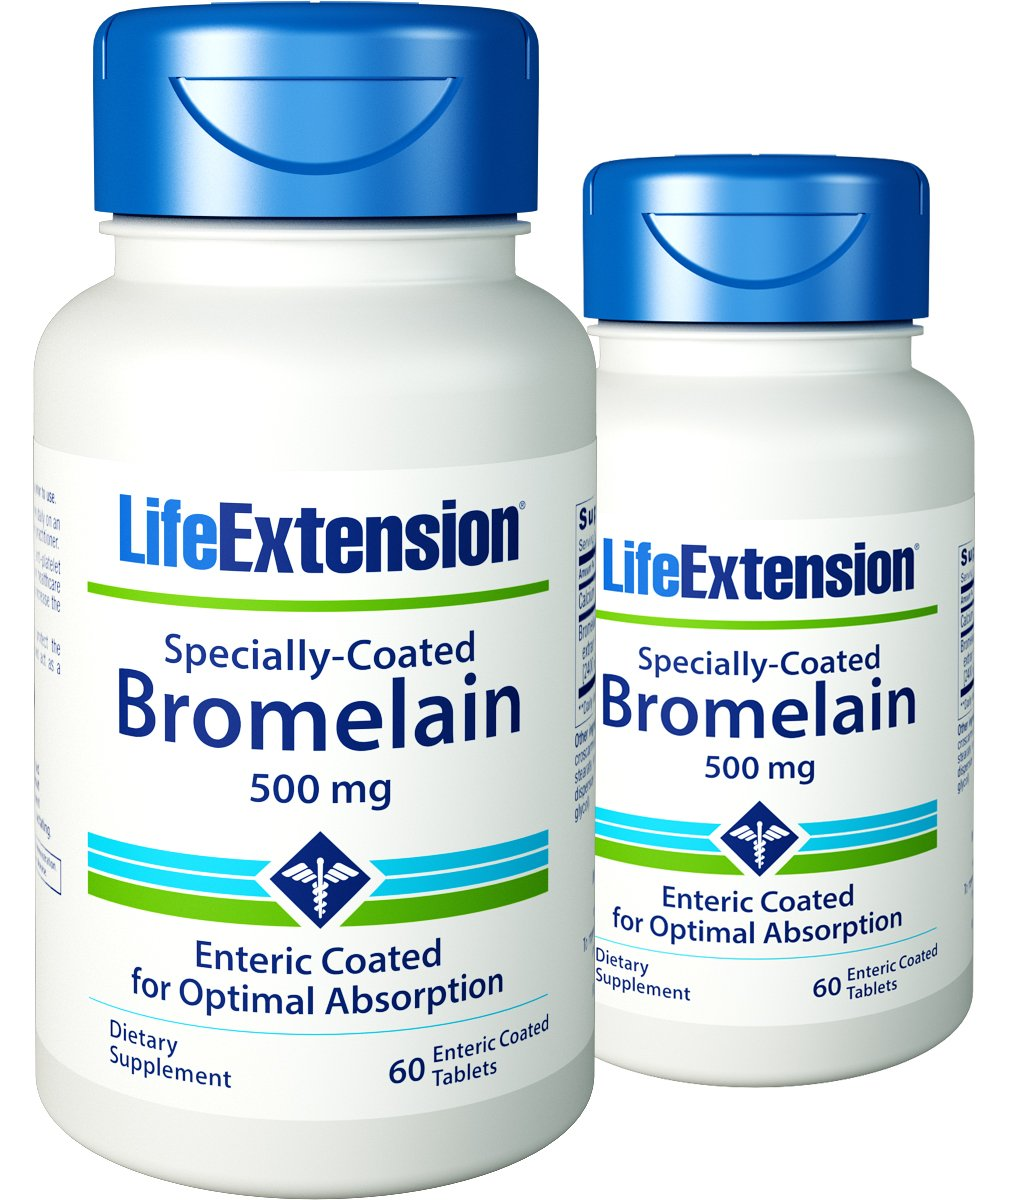 Life Extension - Specially-Coated Bromelain - 500 Mg - 60 Gels (Pack of 2)